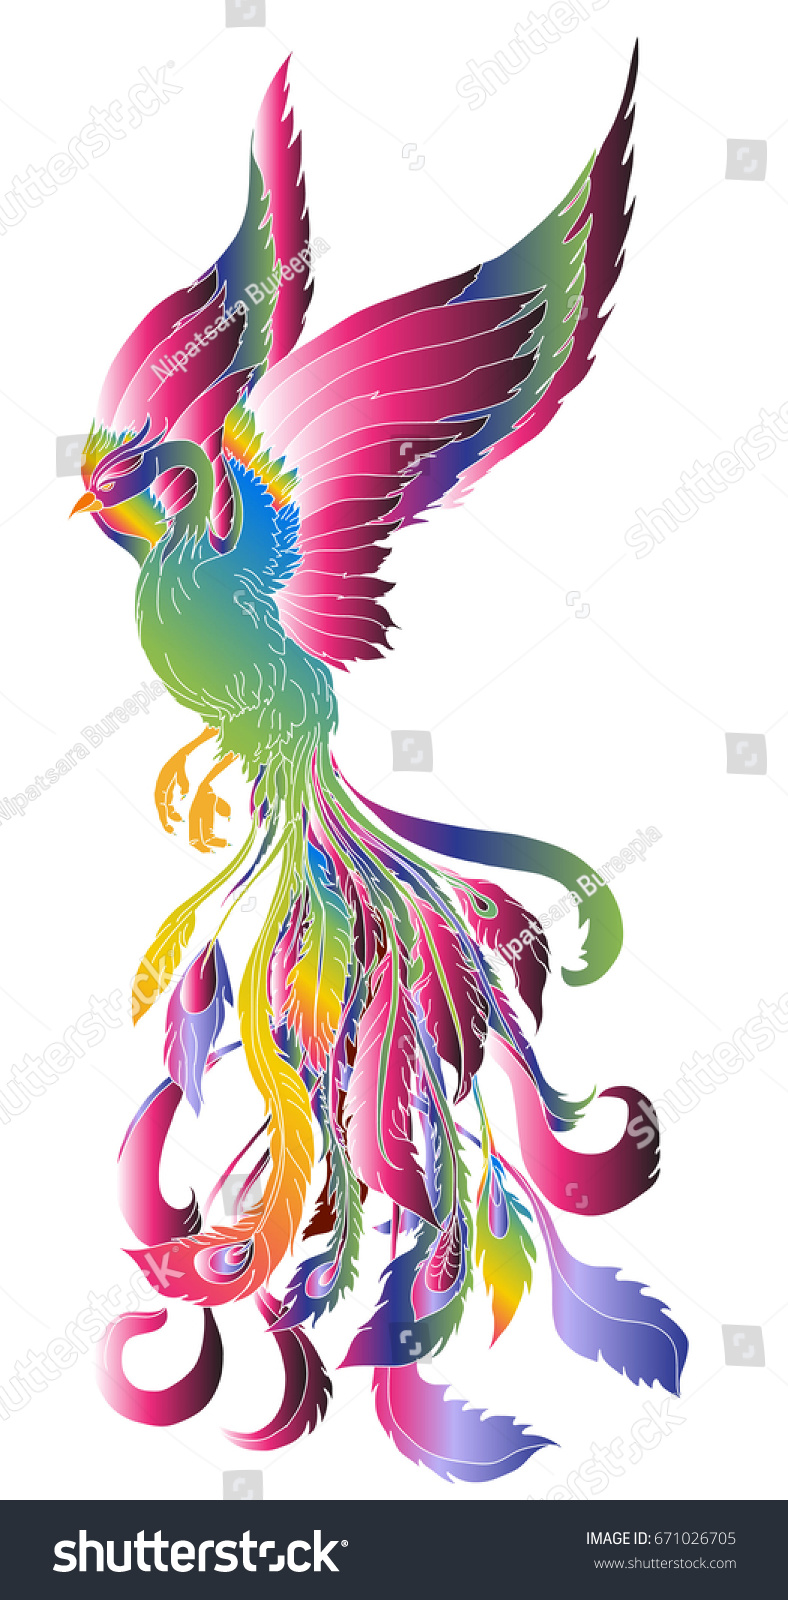 Colorful phoenix tattoo designs - Hand Drawn Colorful Fashion Of Phoenix Tattoo Phoenix Fire Bird Illustration And Character Design